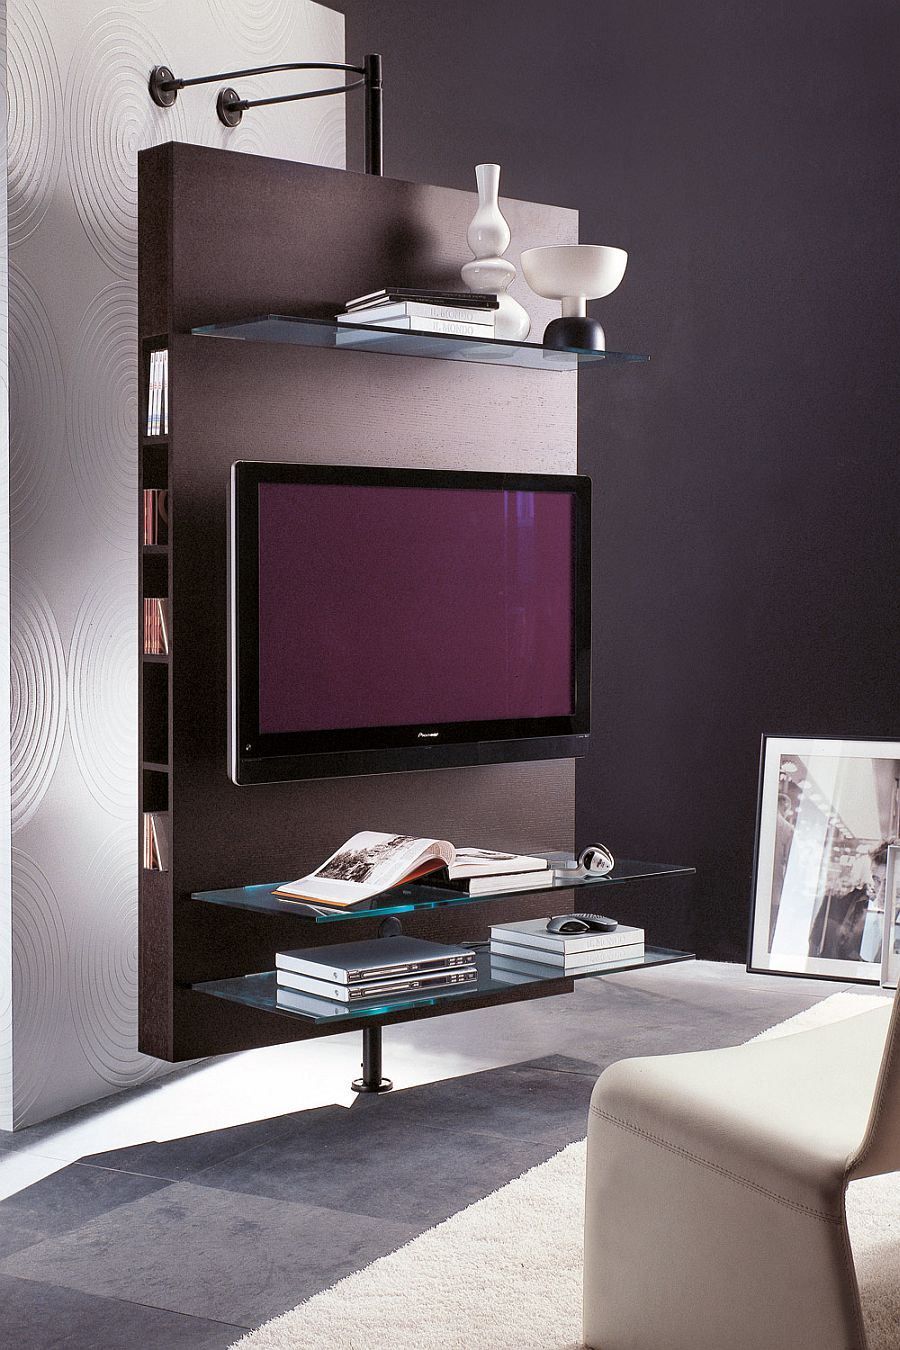 Perfect, stylish media center for the modern living room